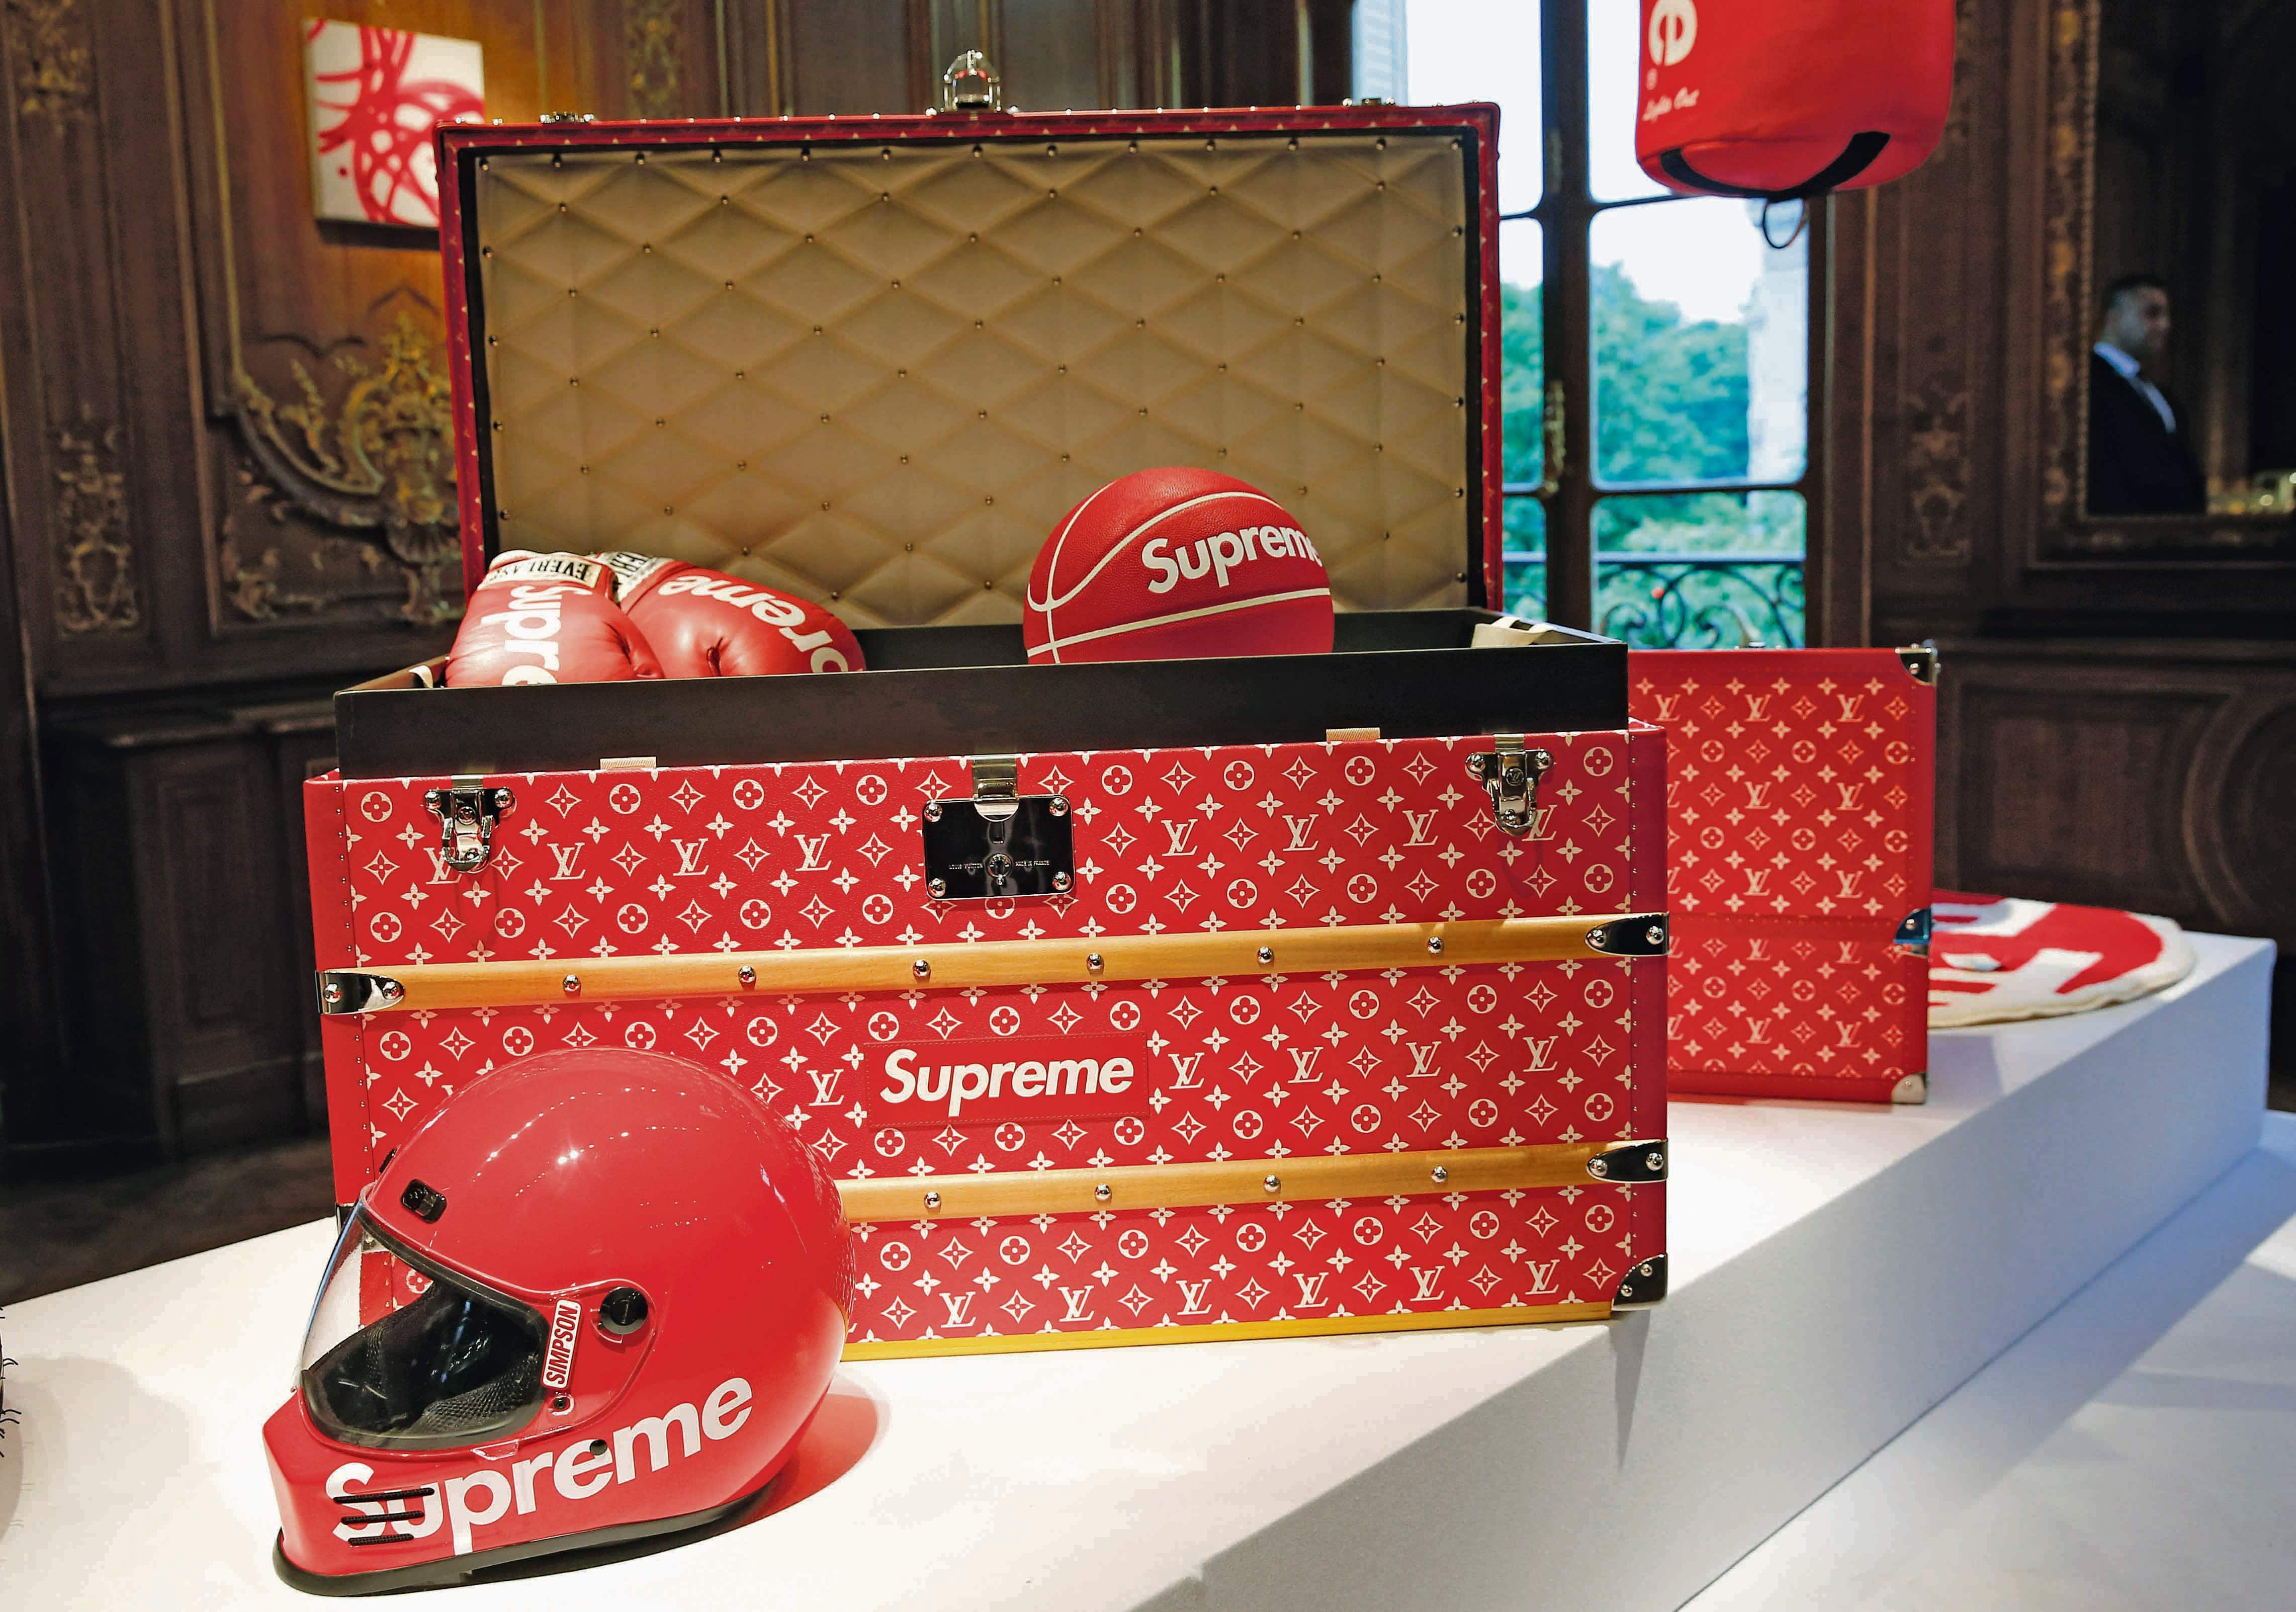 Supreme and Louis Vuitton's collaboration